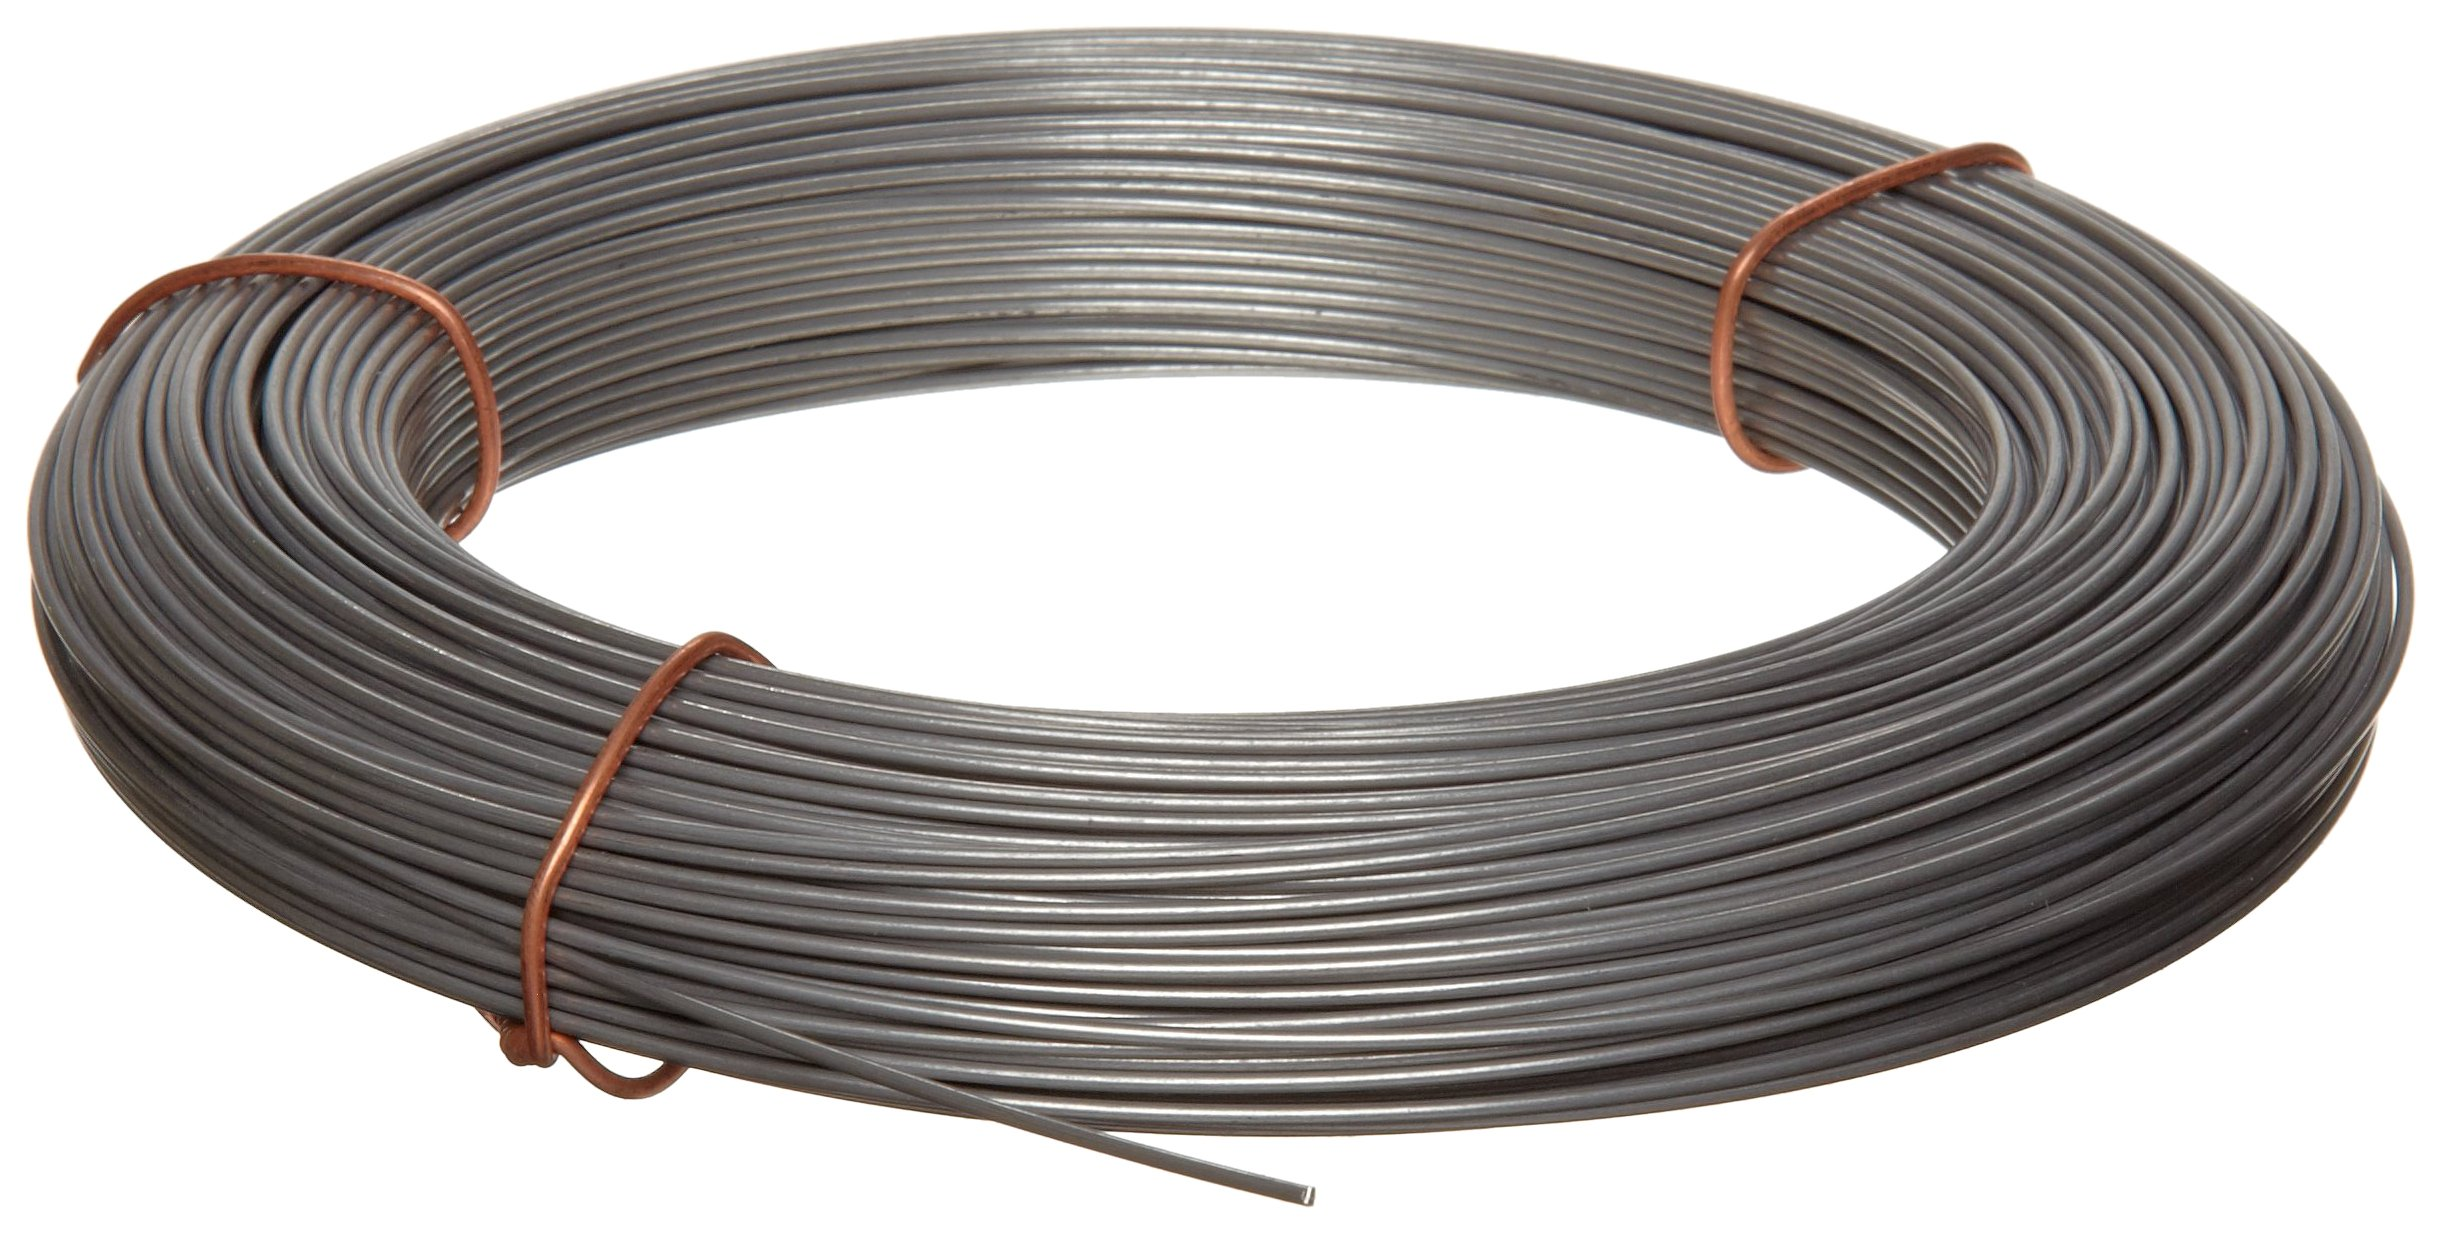 302 Stainless Steel Wire, Unpolished (Mill) Finish, Full Hard Temper, Precision Tolerance, ASTM A555/ASTM A580, 0.022'' Diameter, 774' Length by Small Parts